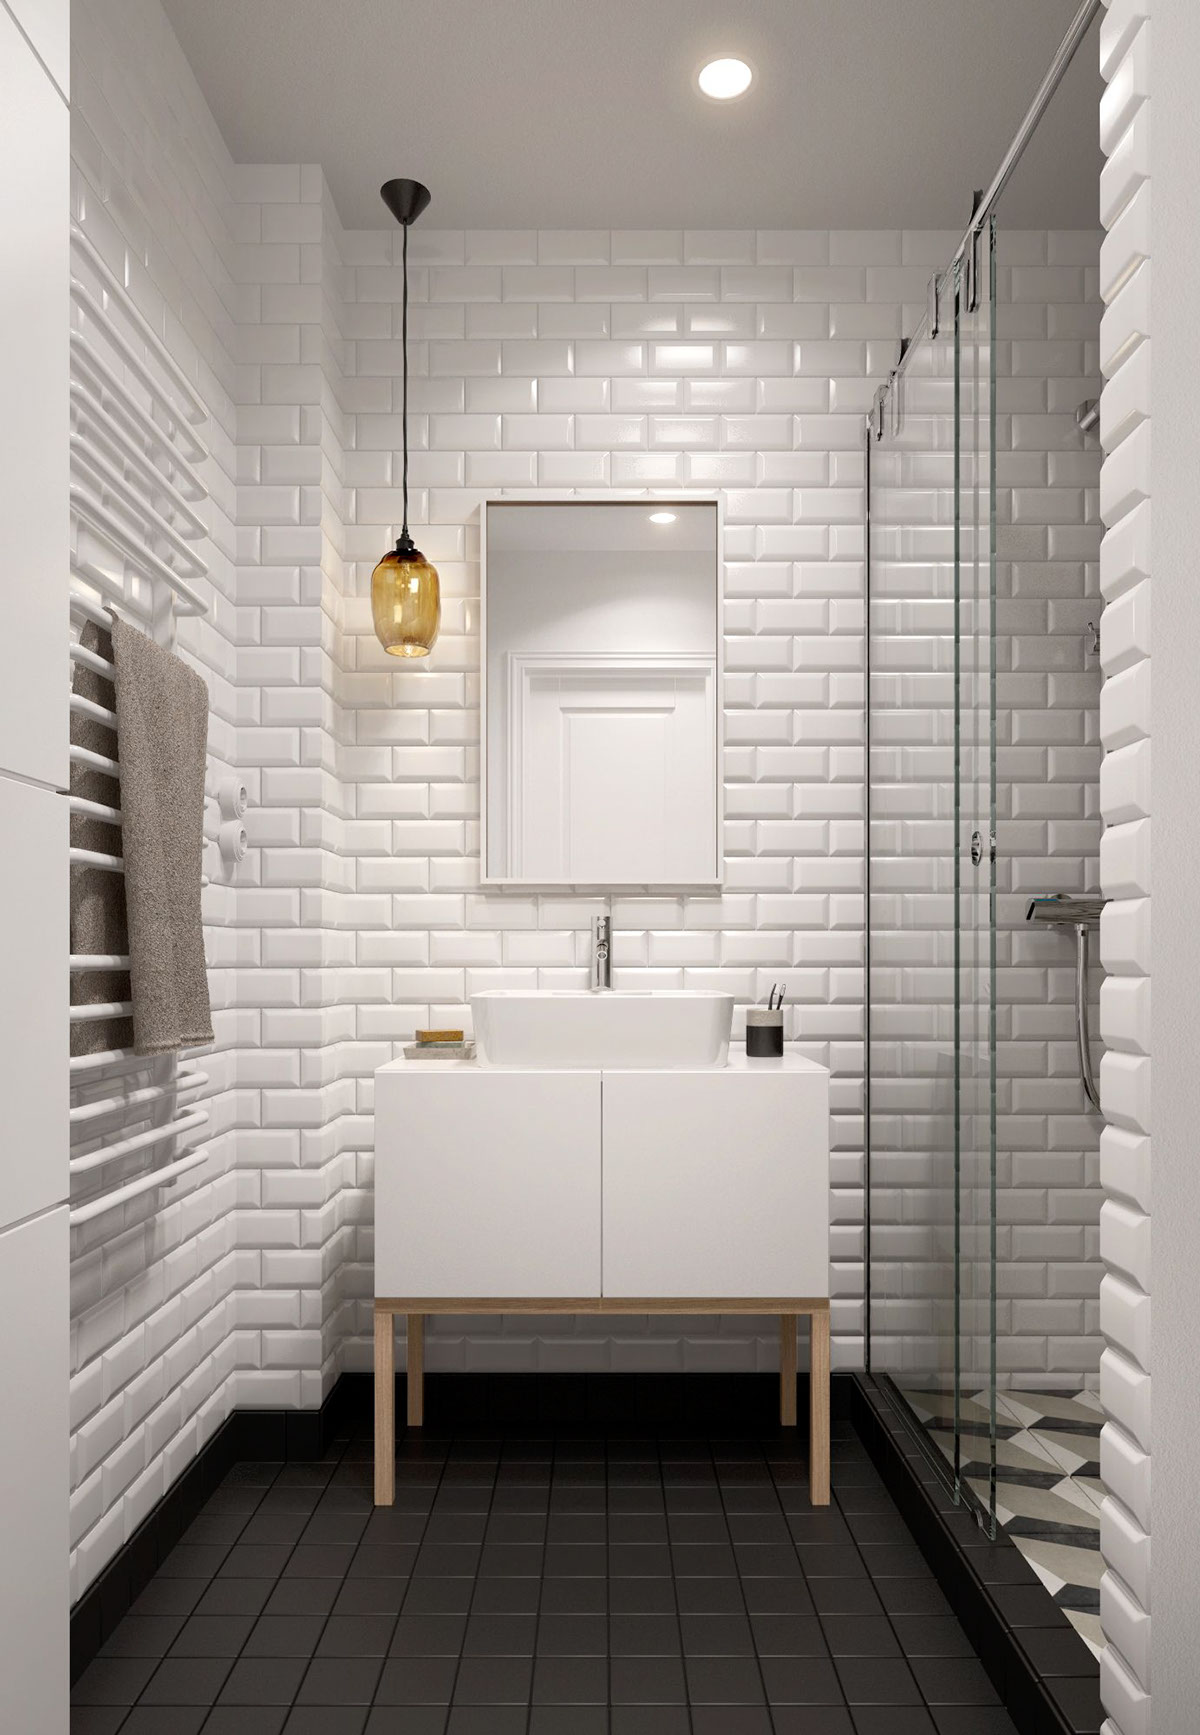 26 Model White Bathroom Tiles Images | eyagci.com